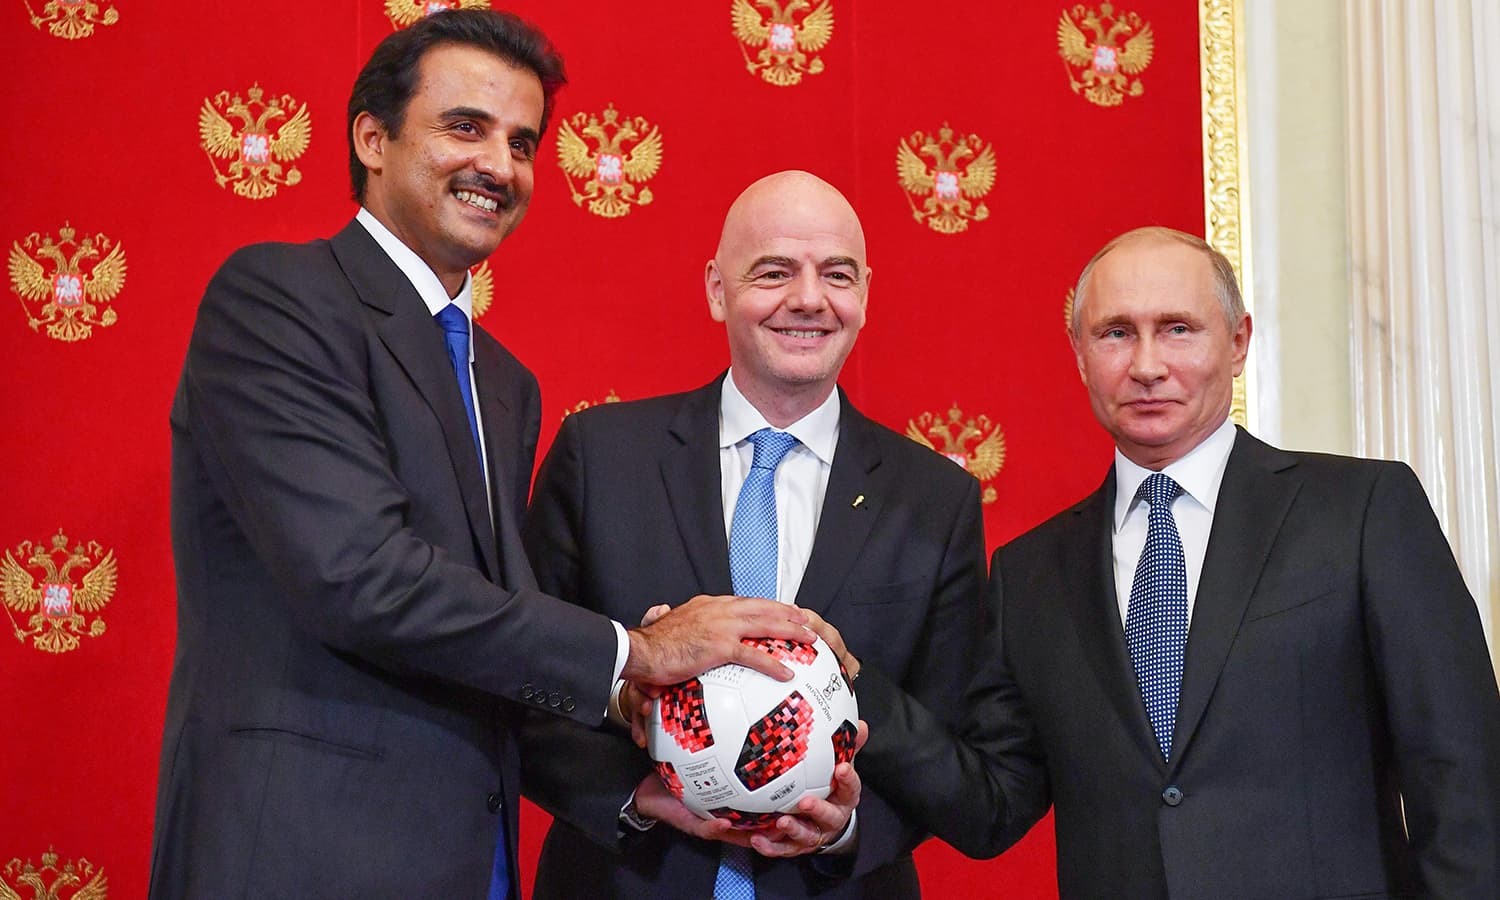 (From L) Emir of Qatar Sheikh Tamim bin Hamad Al-Thani, FIFA President Gianni Infantino and Russian President Vladimir Putin pose for a photograph during a symbolic transfer of the authority to Qatar to host the World Cup 2022 at the Kremlin in Moscow. — AFP